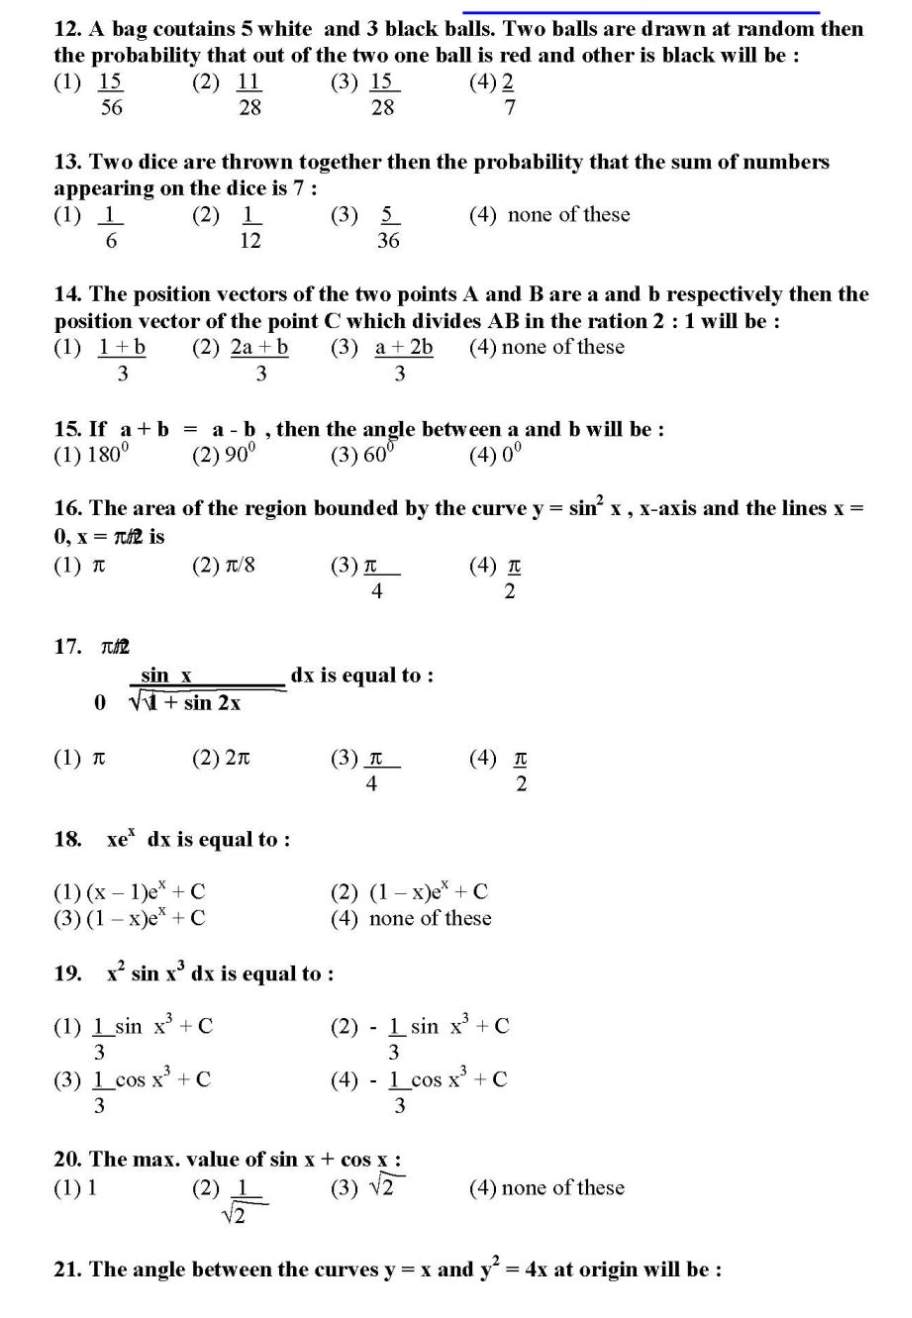 Mp ppt exam model question paper 2018 2019 student forum for question paper here is attachment malvernweather Choice Image